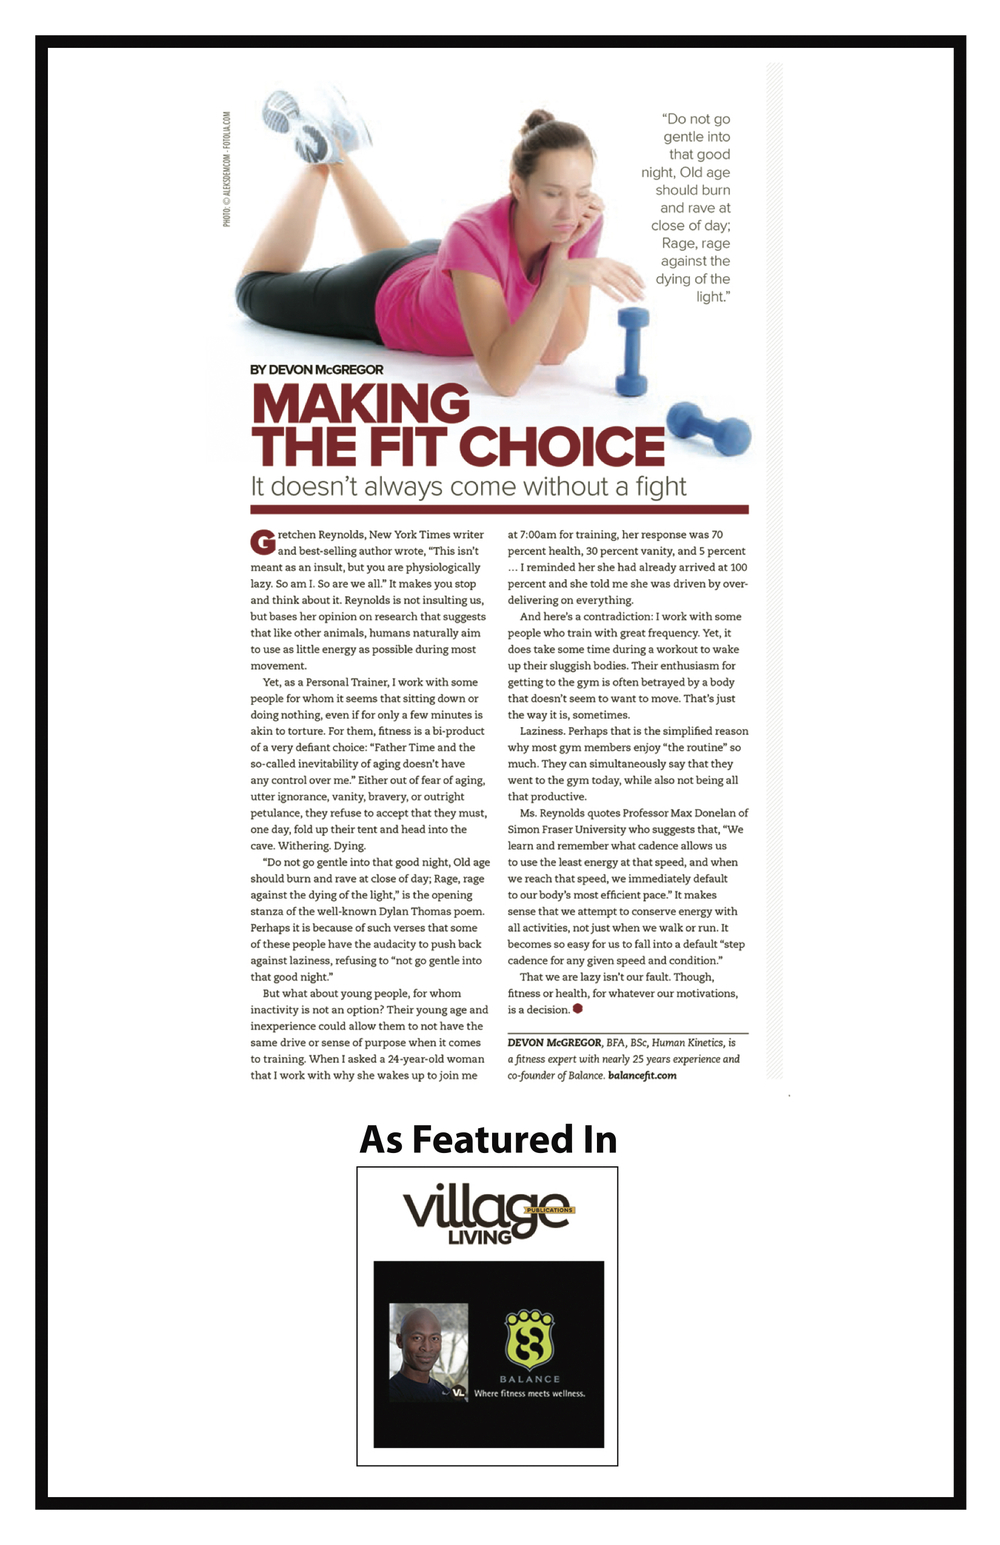 %22Making the Fit Choice%22_Village Living Publication.jpg